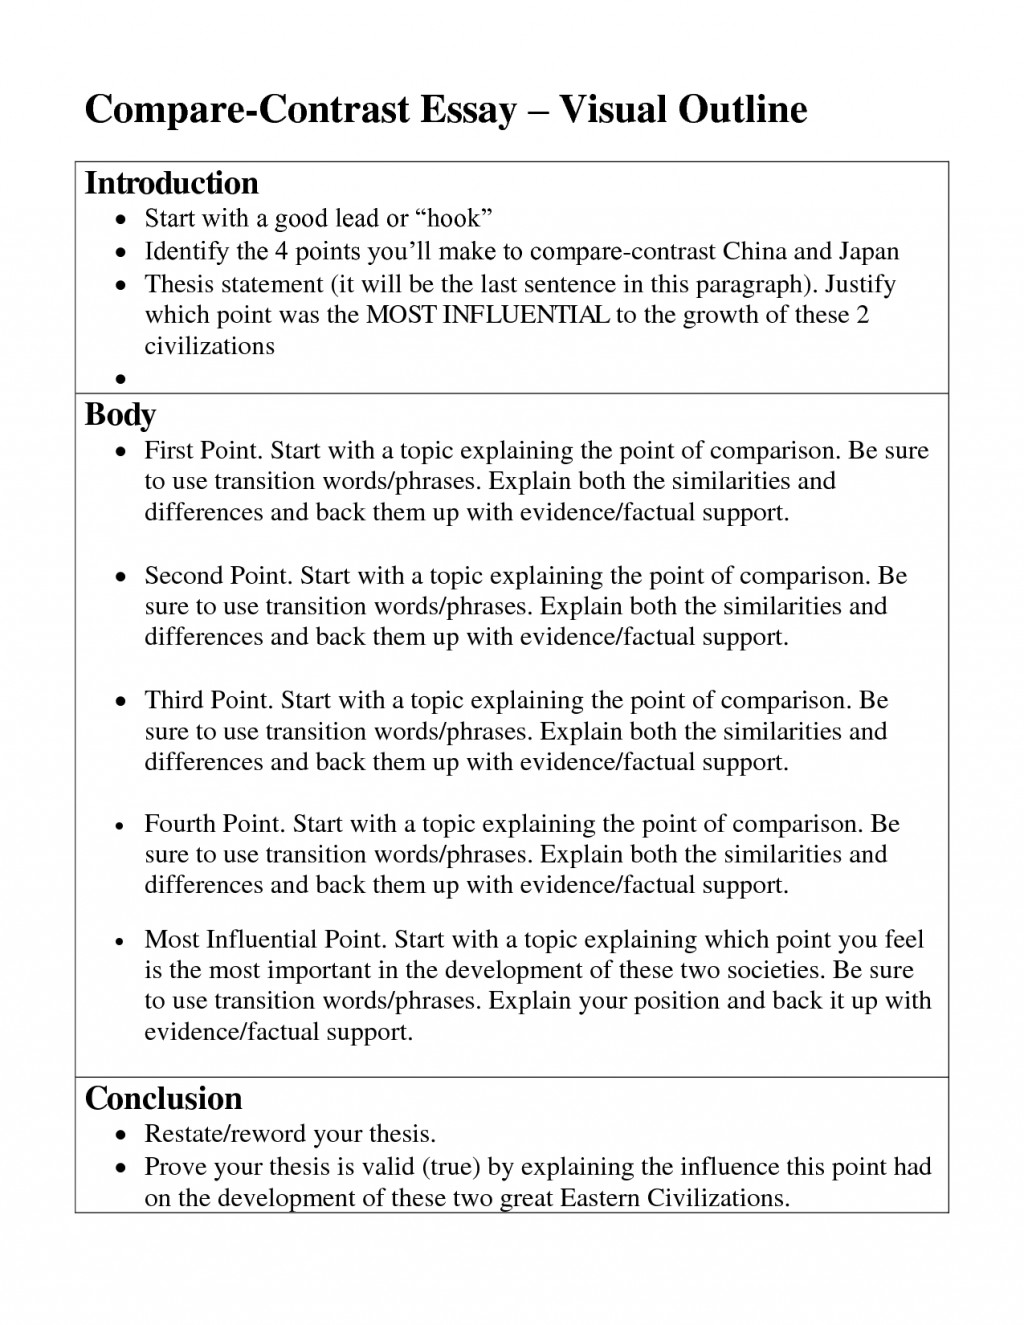 004 Comparison And Contrast Essay Outline Impressive Compare 5th Grade High School Template Large